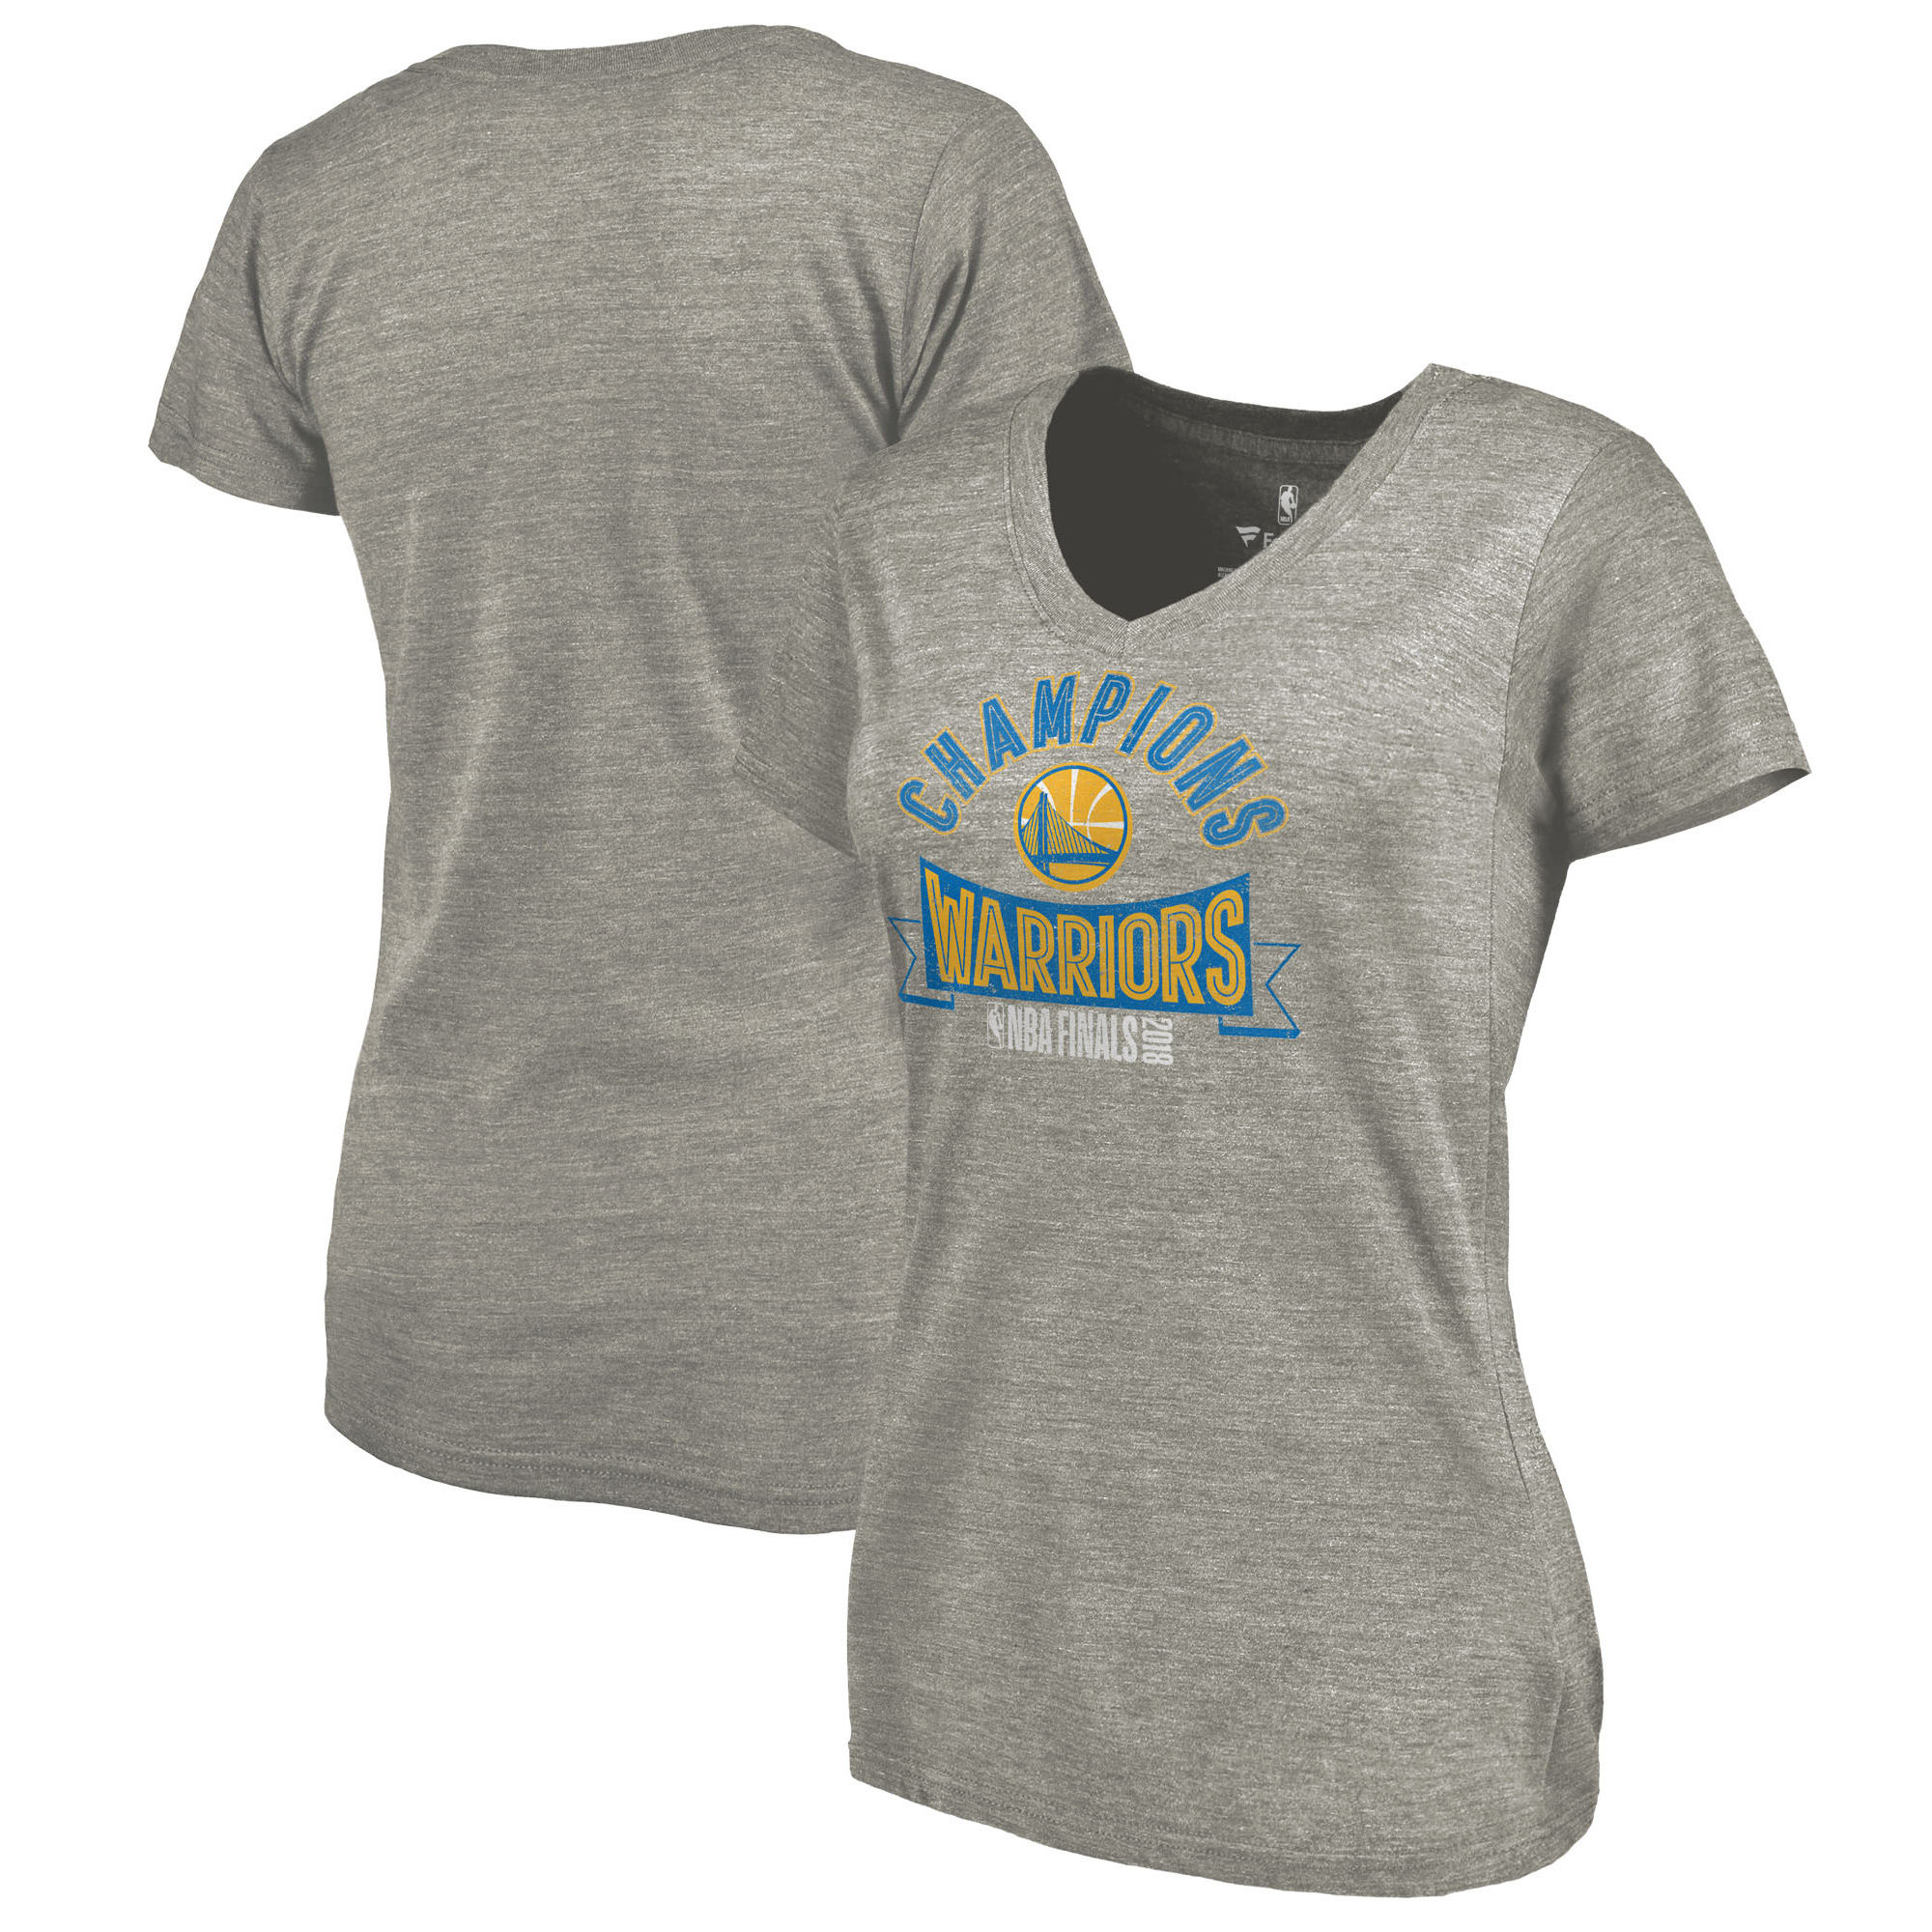 Golden State Warriors Fanatics Branded Women's 2018 NBA Finals Champions One Commitment Tri-Blend V-Neck T-Shirt Heather Gray